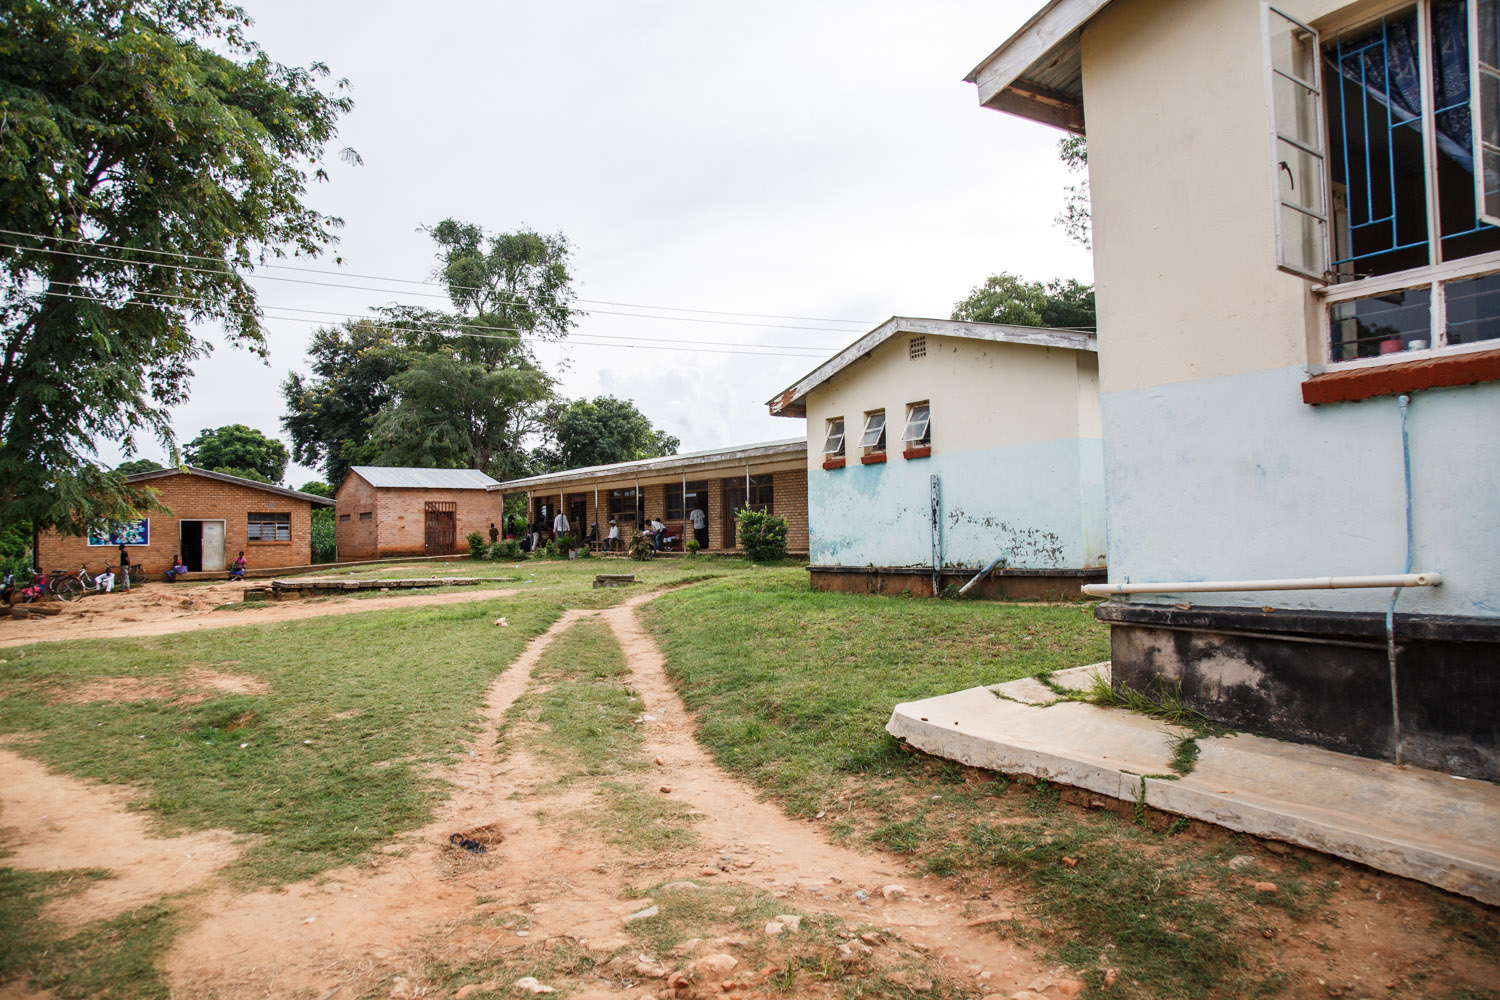 Chintheche Rural Hospital in Nkhata Bay district in North Malawi.